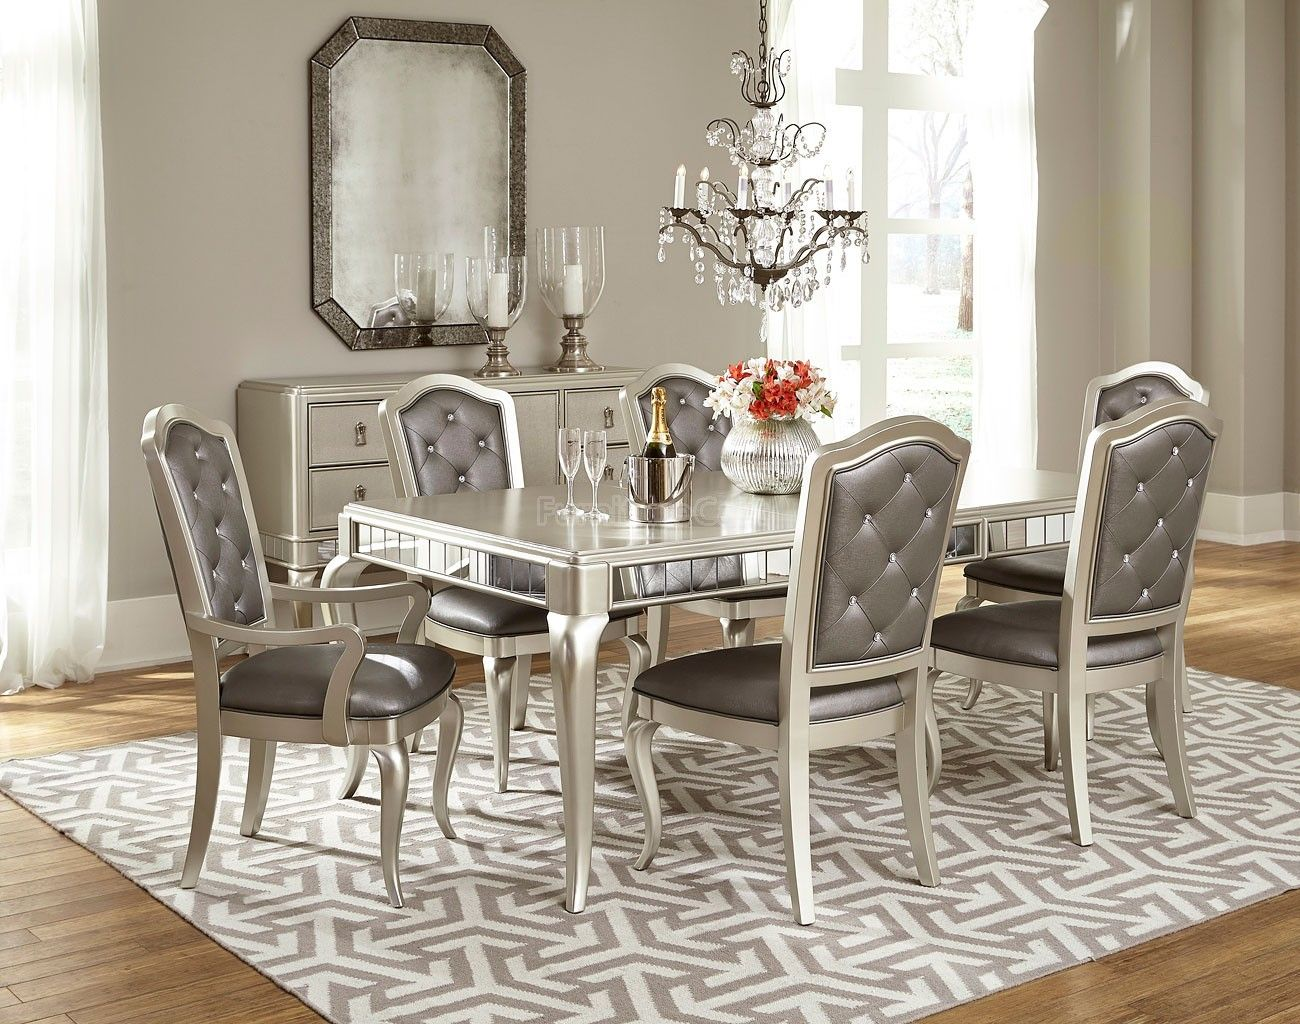 Diva Dining Room Set Samuel Lawrence Furniture | Furniture Cart